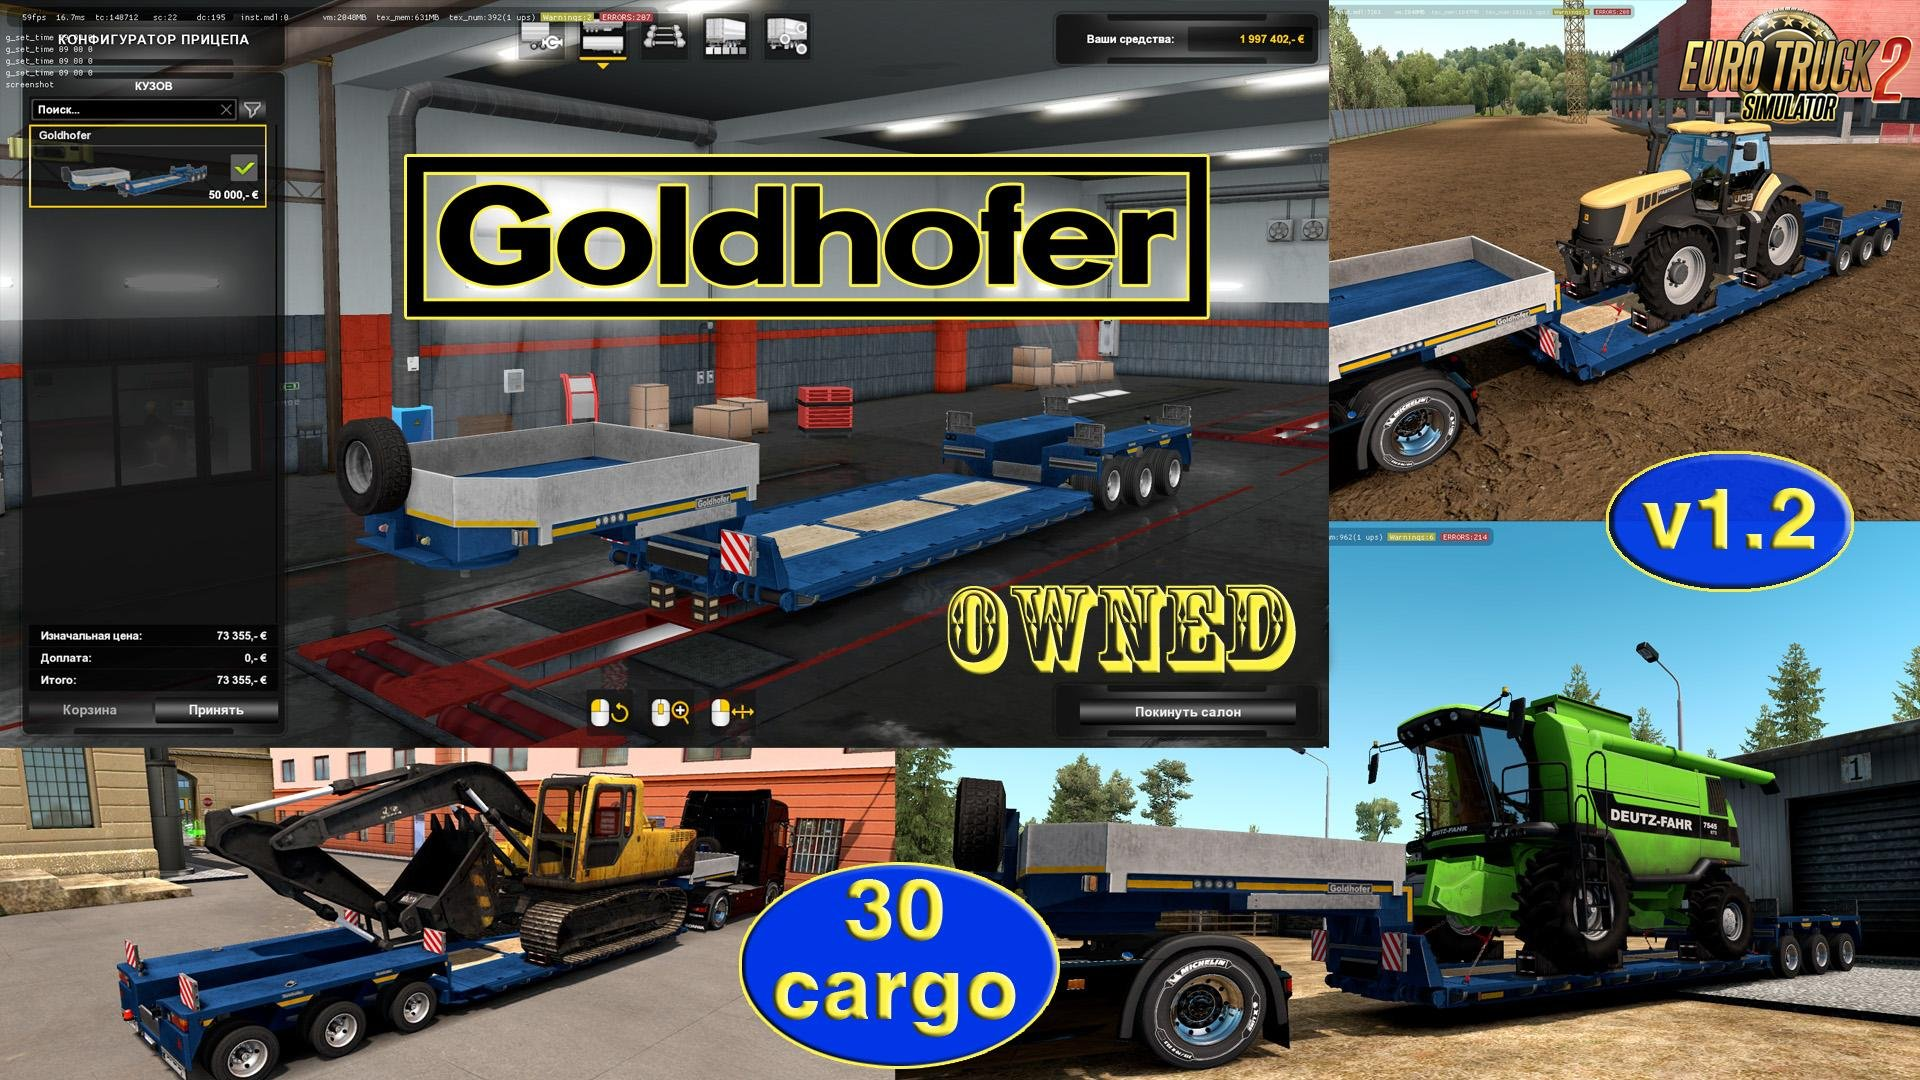 Ownable trailer Goldhofer v1.2 by Jazzycat